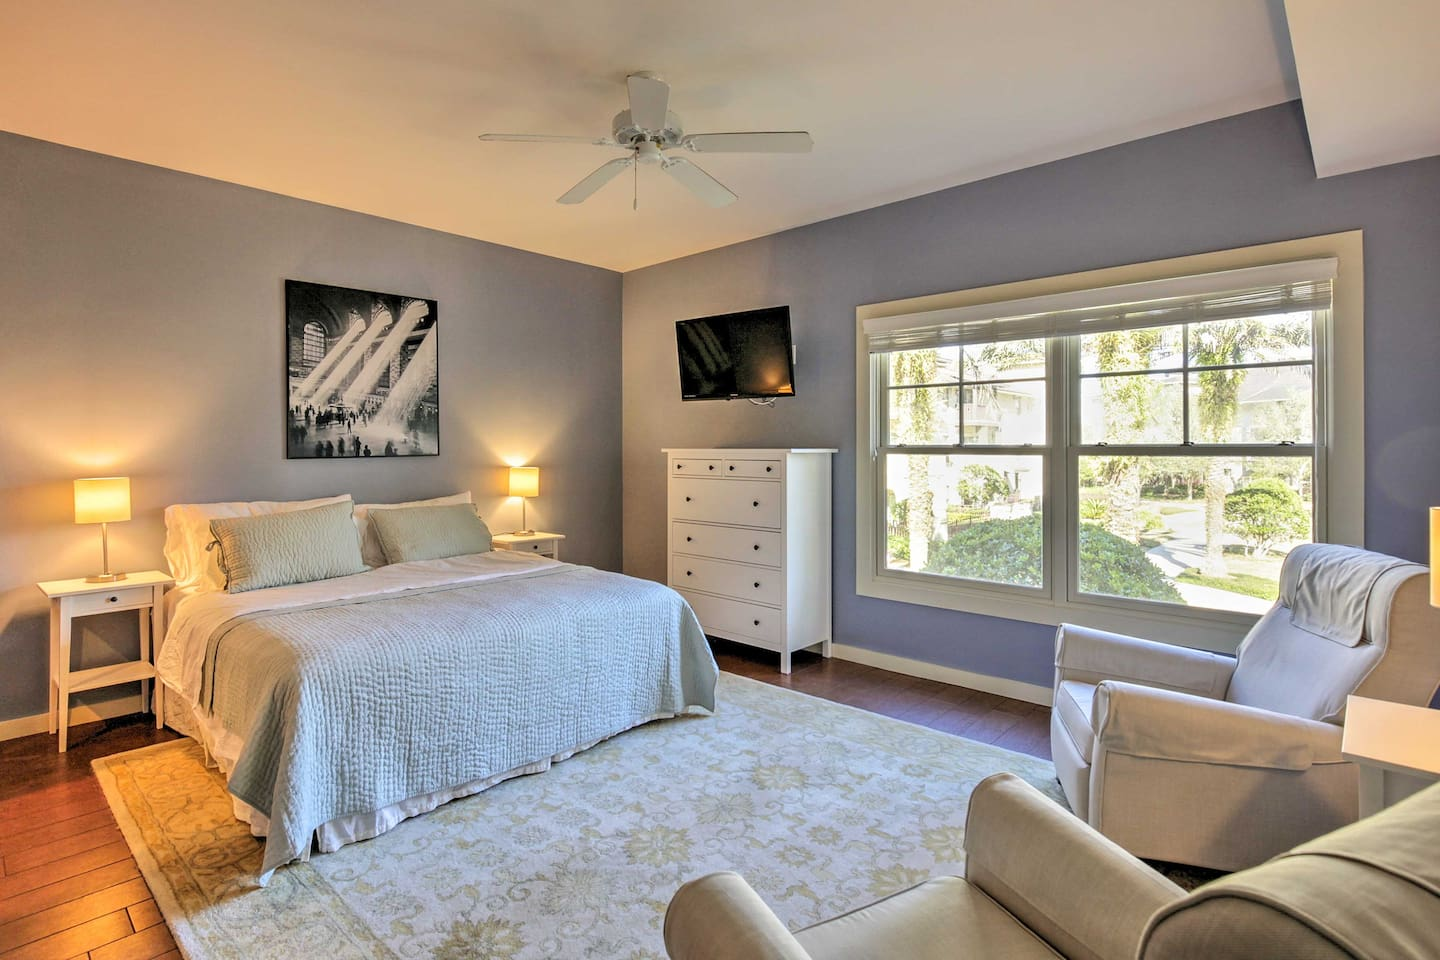 Plan a couple's retreat to this vacation rental studio condo in St. Augustine!